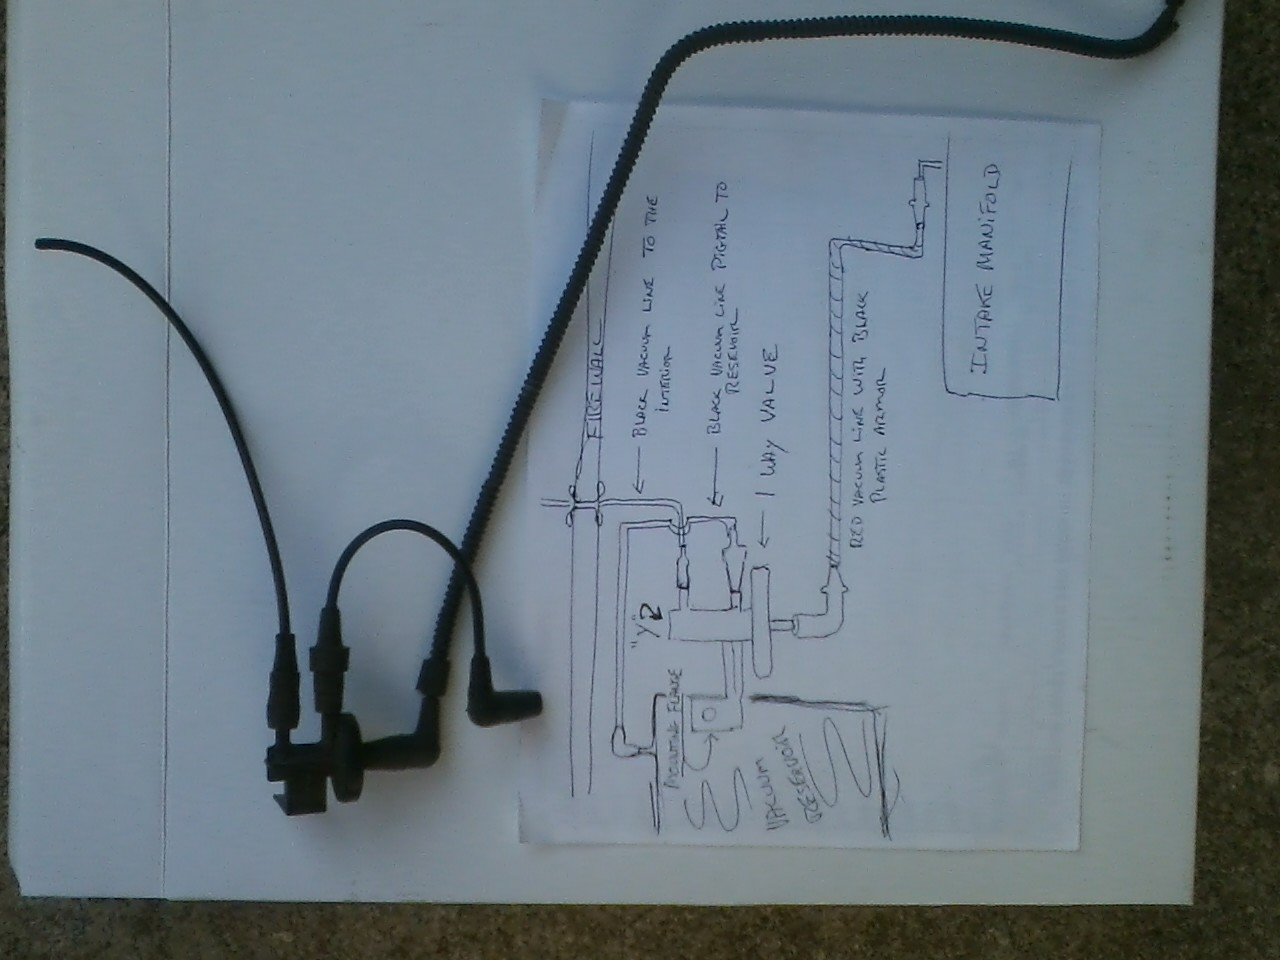 Chevy Truck Wiring Diagram 2004 Ford Explorer Window Fuse 1999 Chevy